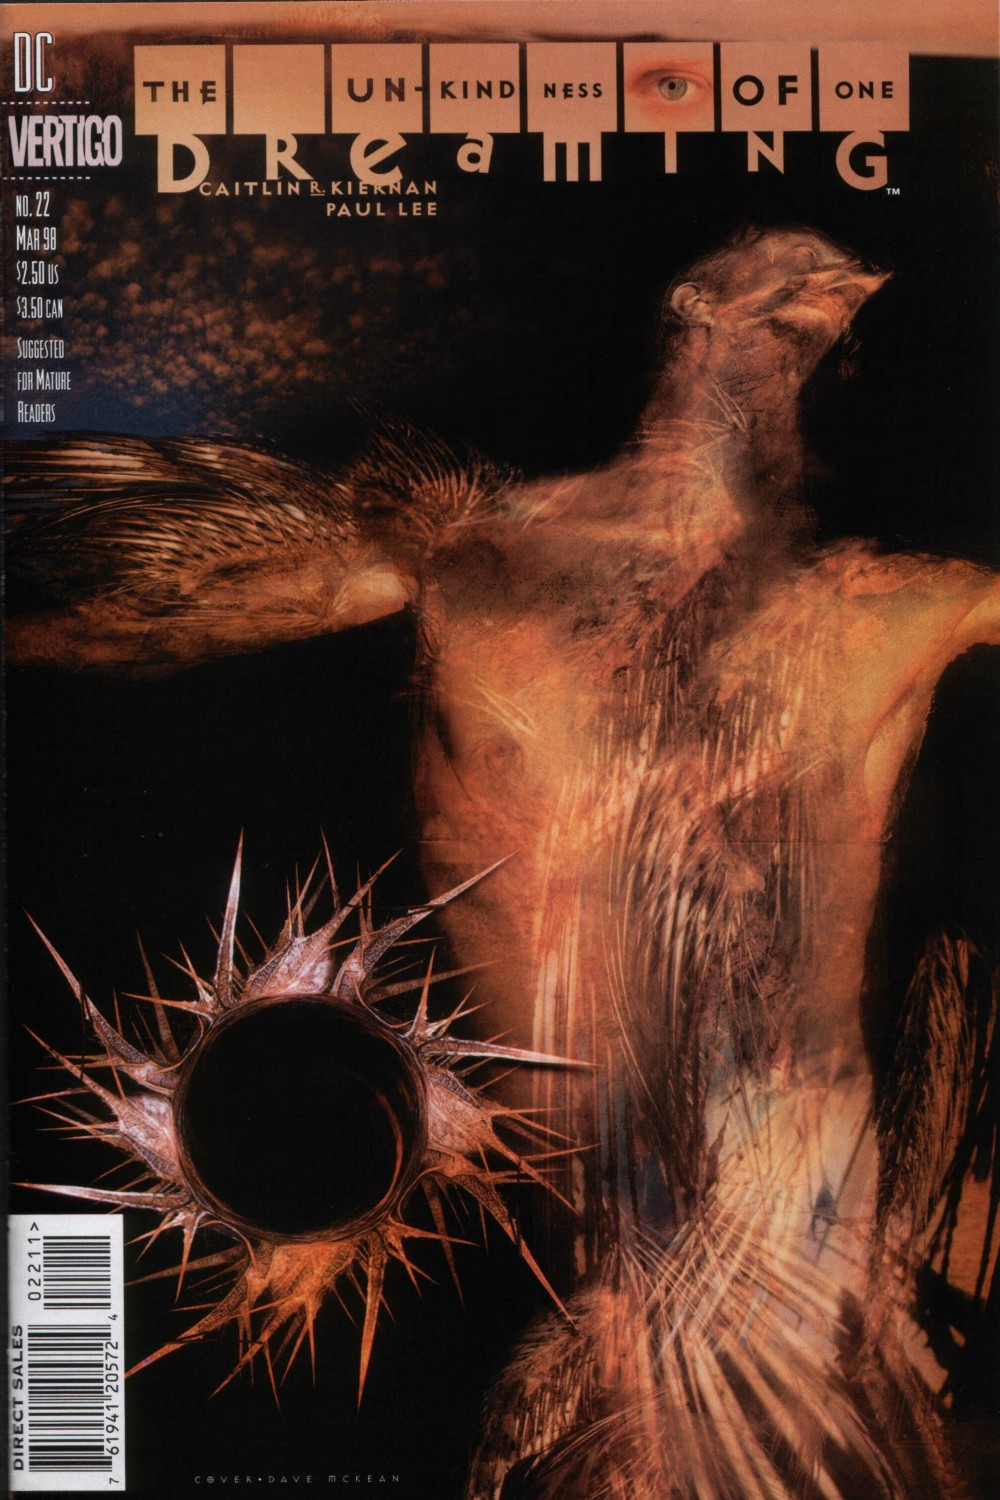 Dreaming, The [DC Vertigo] V1 0022.jpg